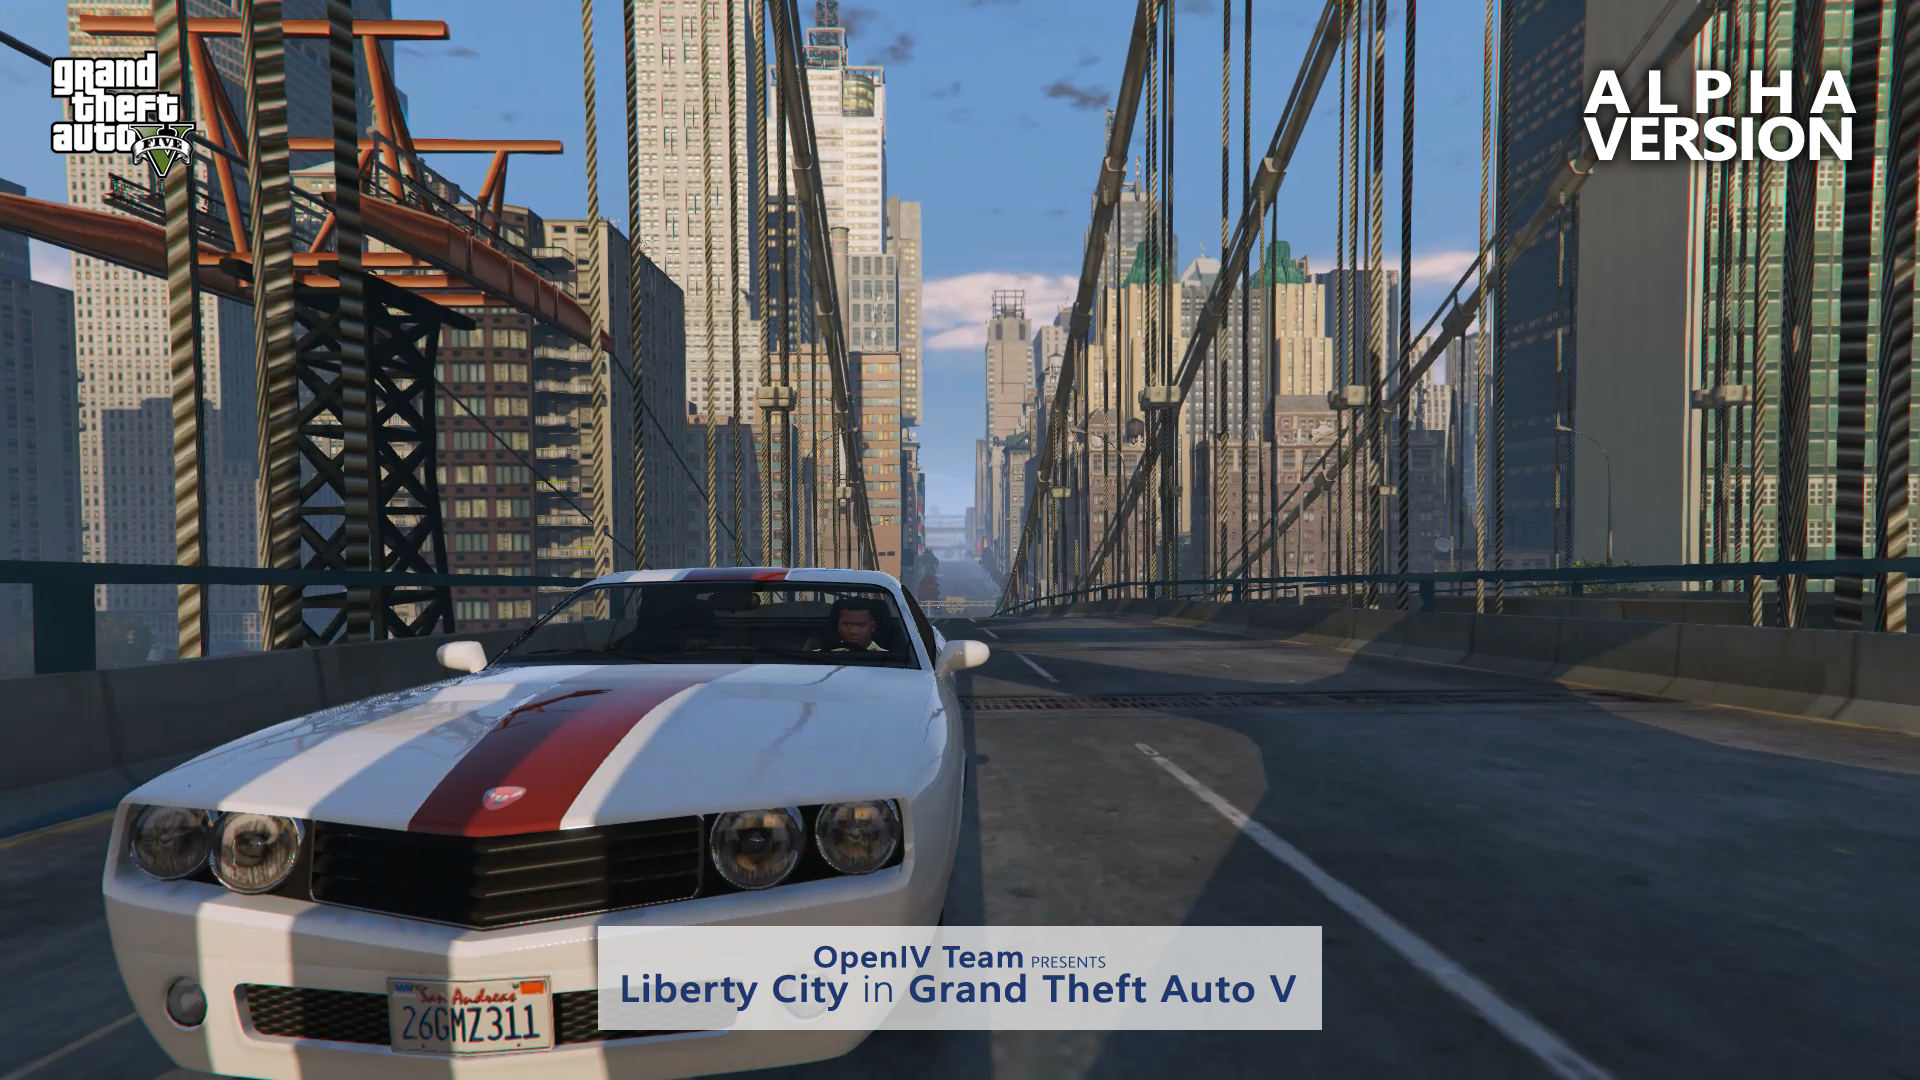 Grand Theft Auto V Liberty City Mod First Screenshots